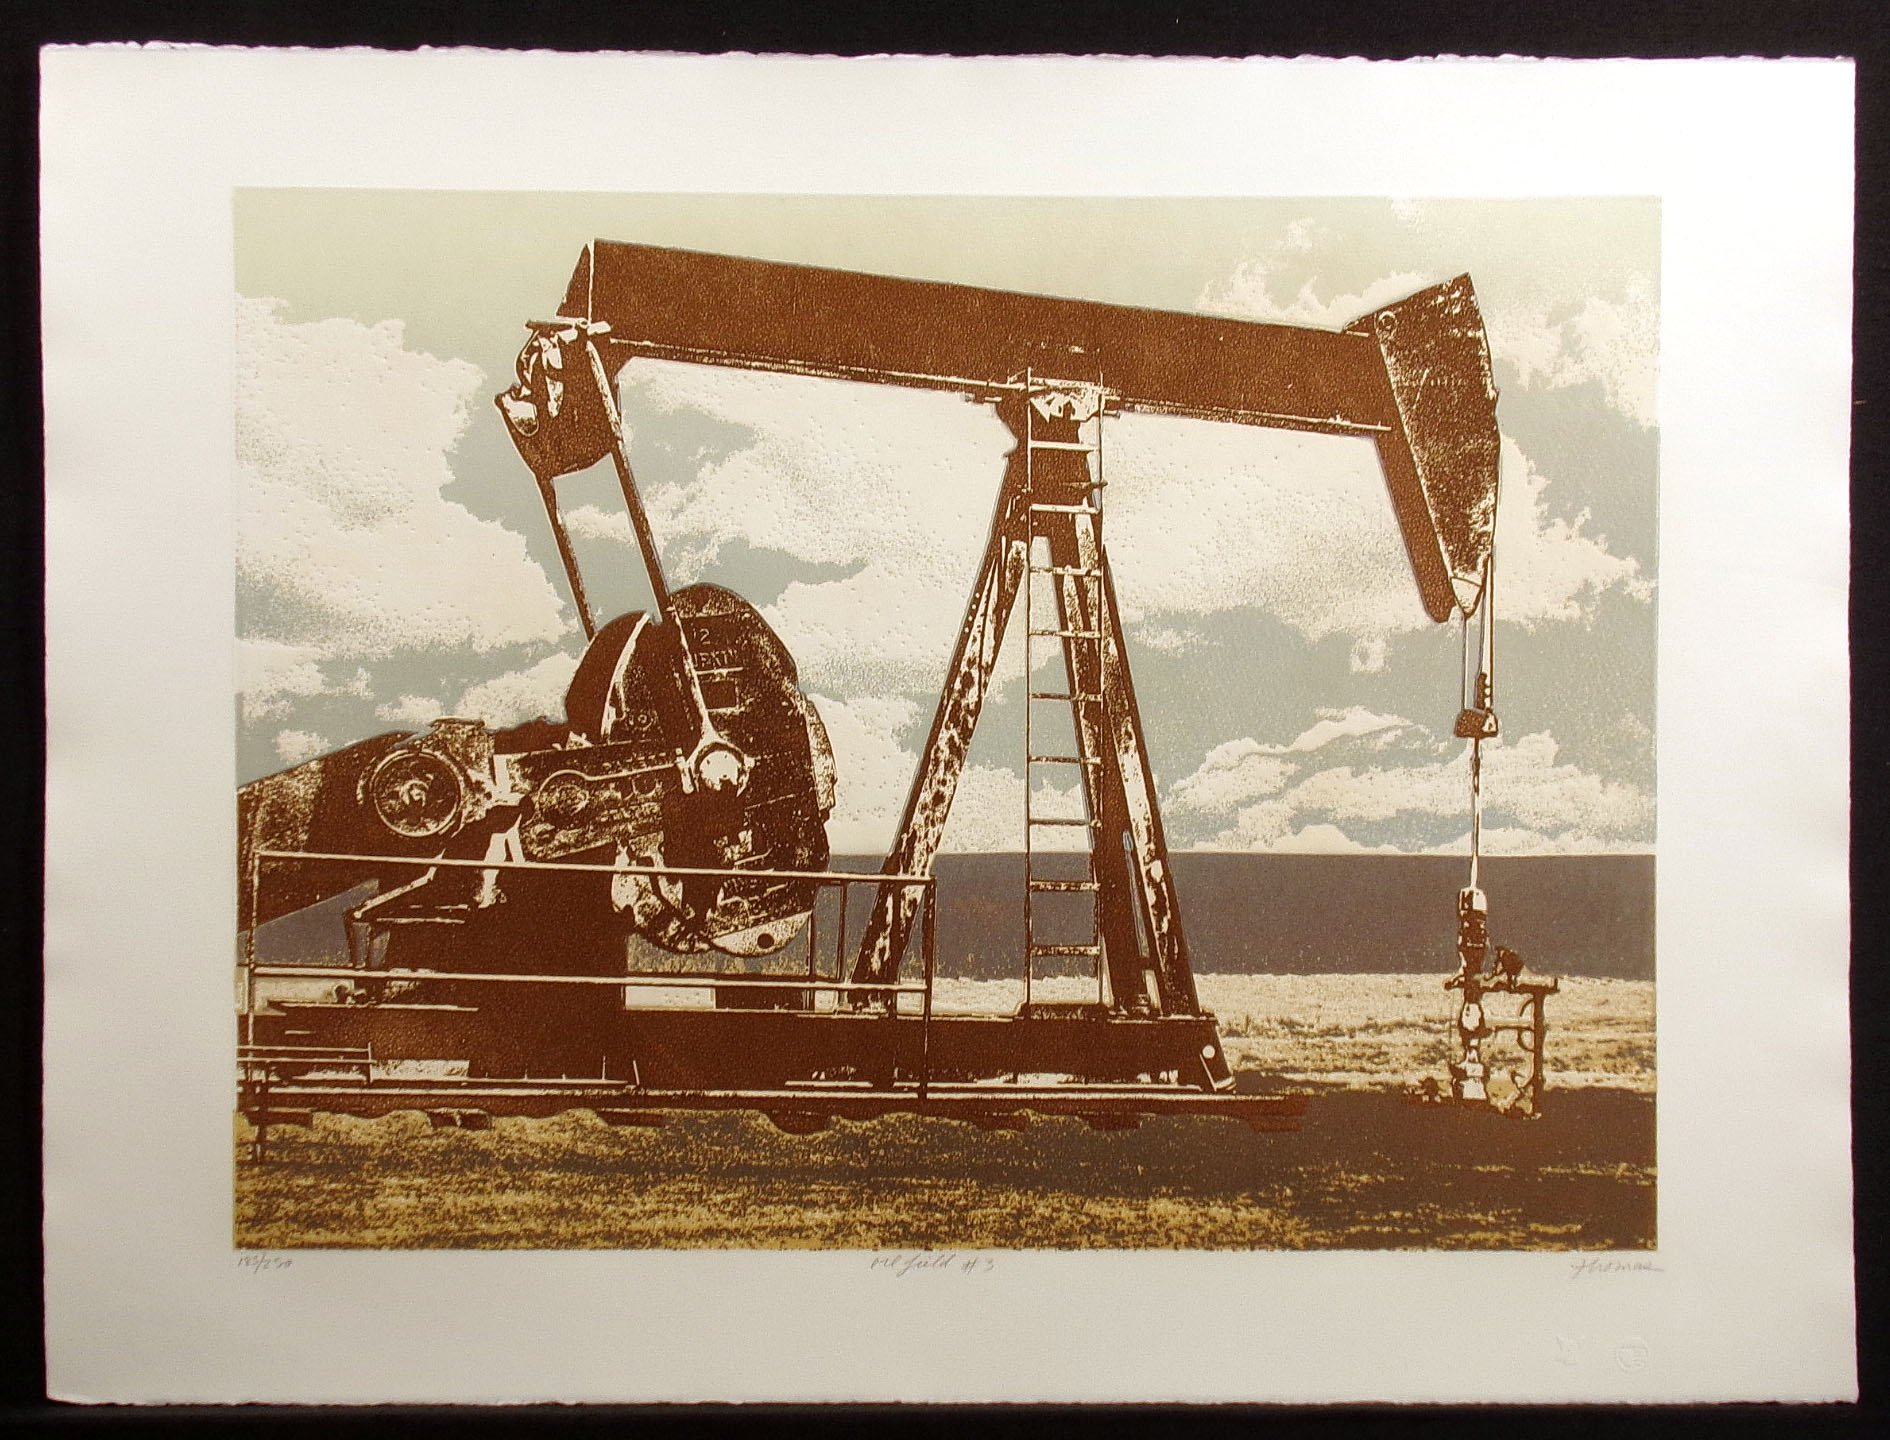 Oil Field #3 by